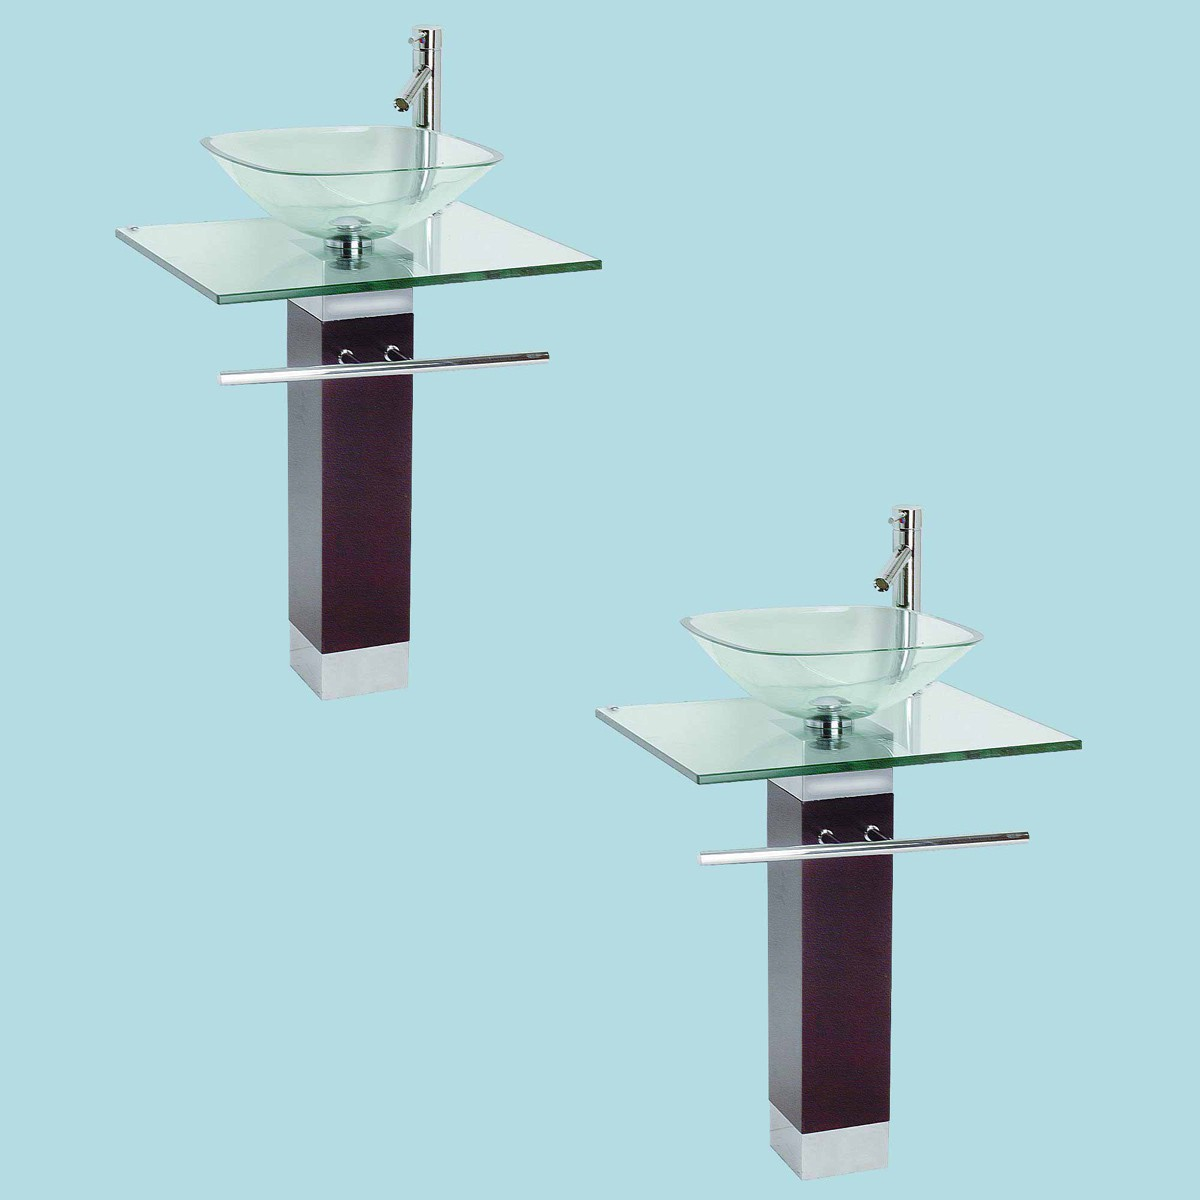 2 Tempered Glass Pedestal Sink Chrome Faucet Towel Bar and Drain ...